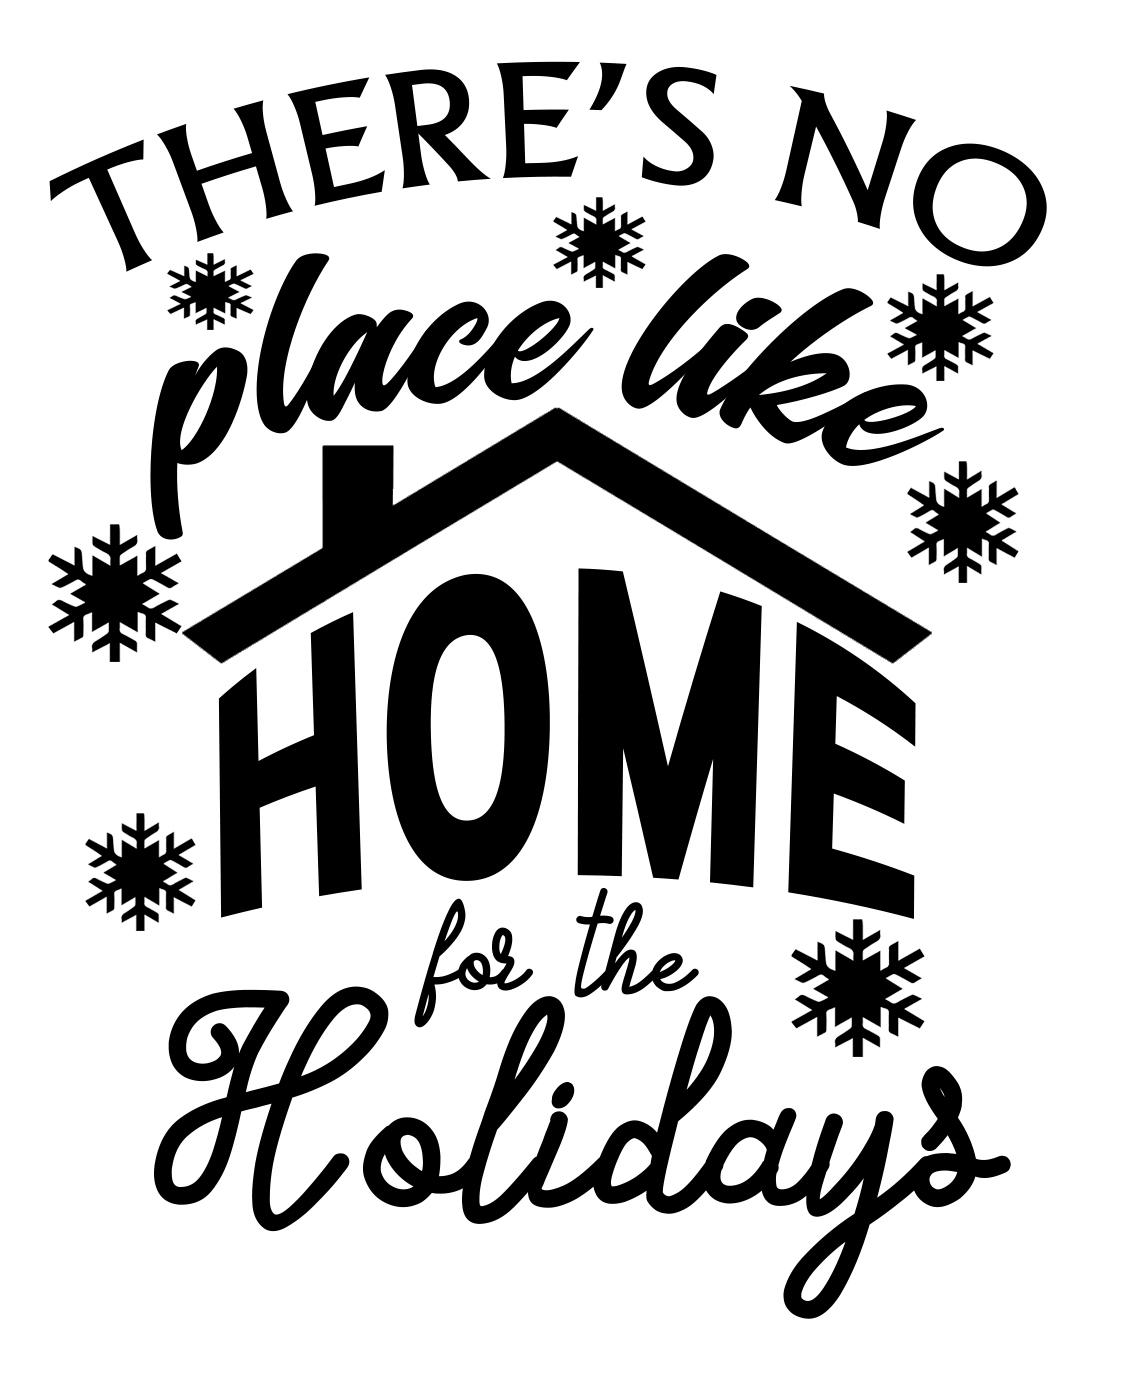 Free There's No Place Like Home for the Holidays SVG